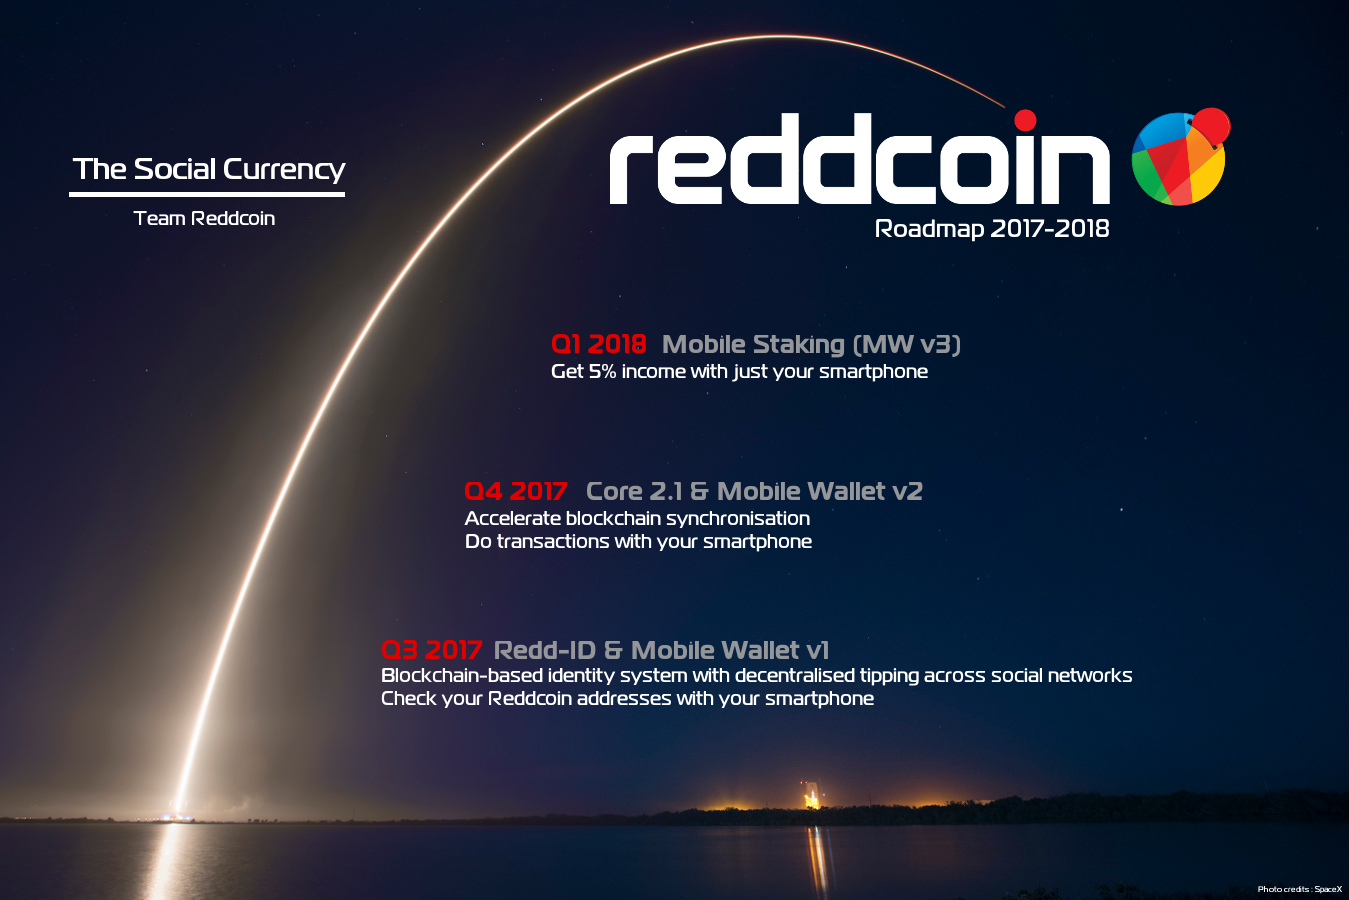 Roadmap Reddcoin